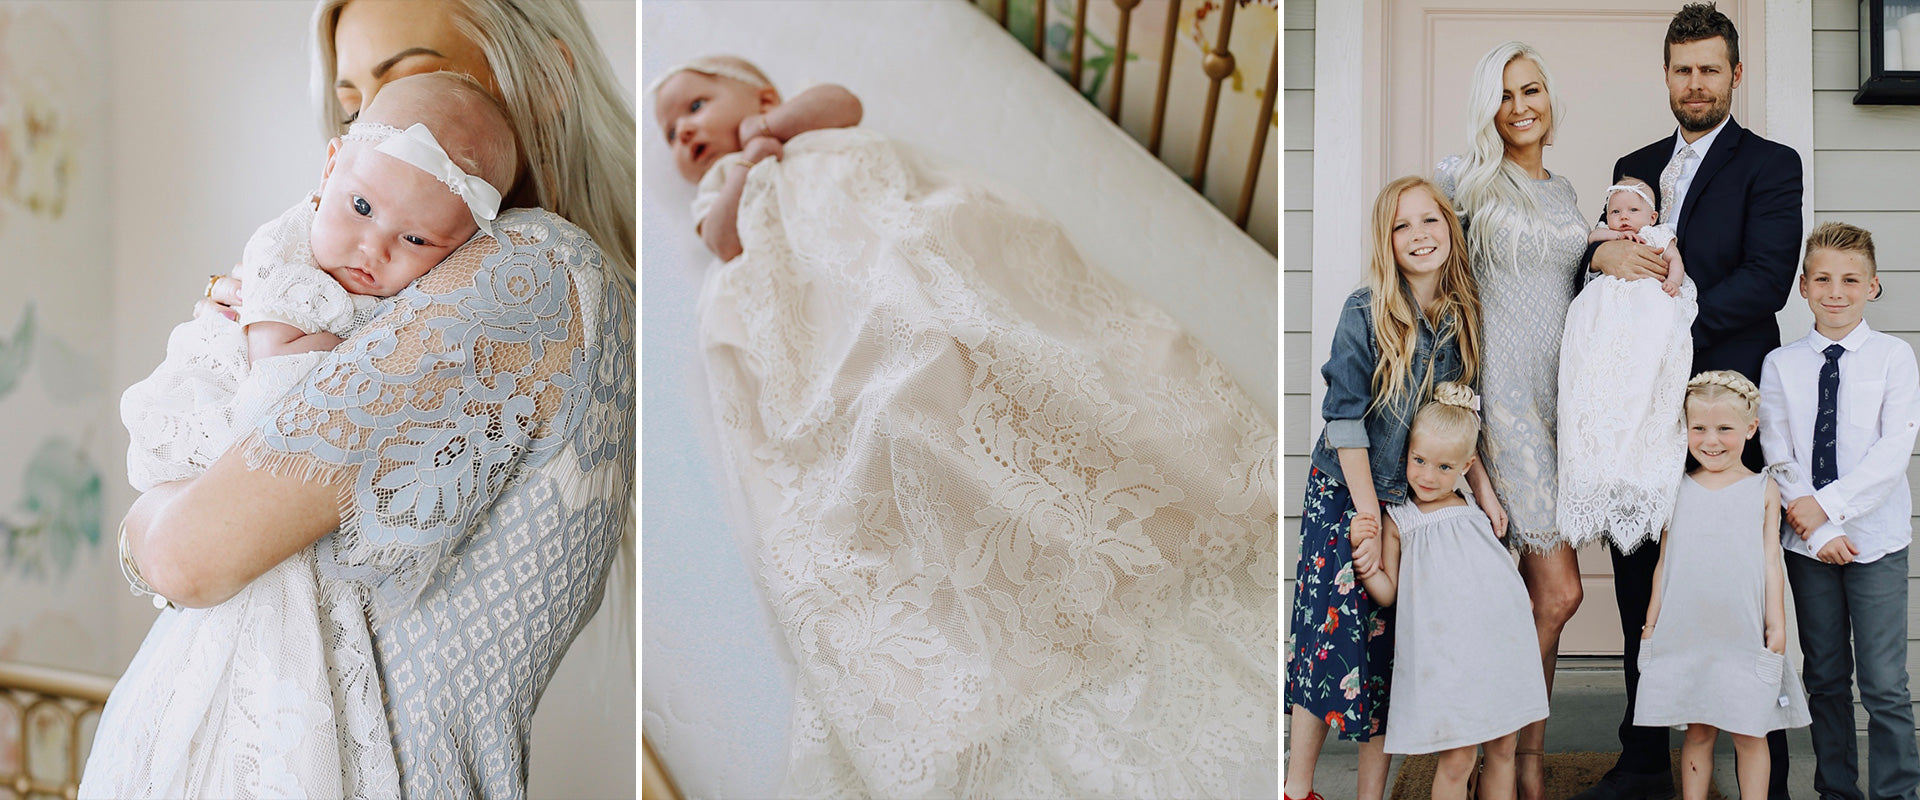 Christening Gowns and Baptism Outfits - ChristeningGowns.com –  Christeninggowns.com.